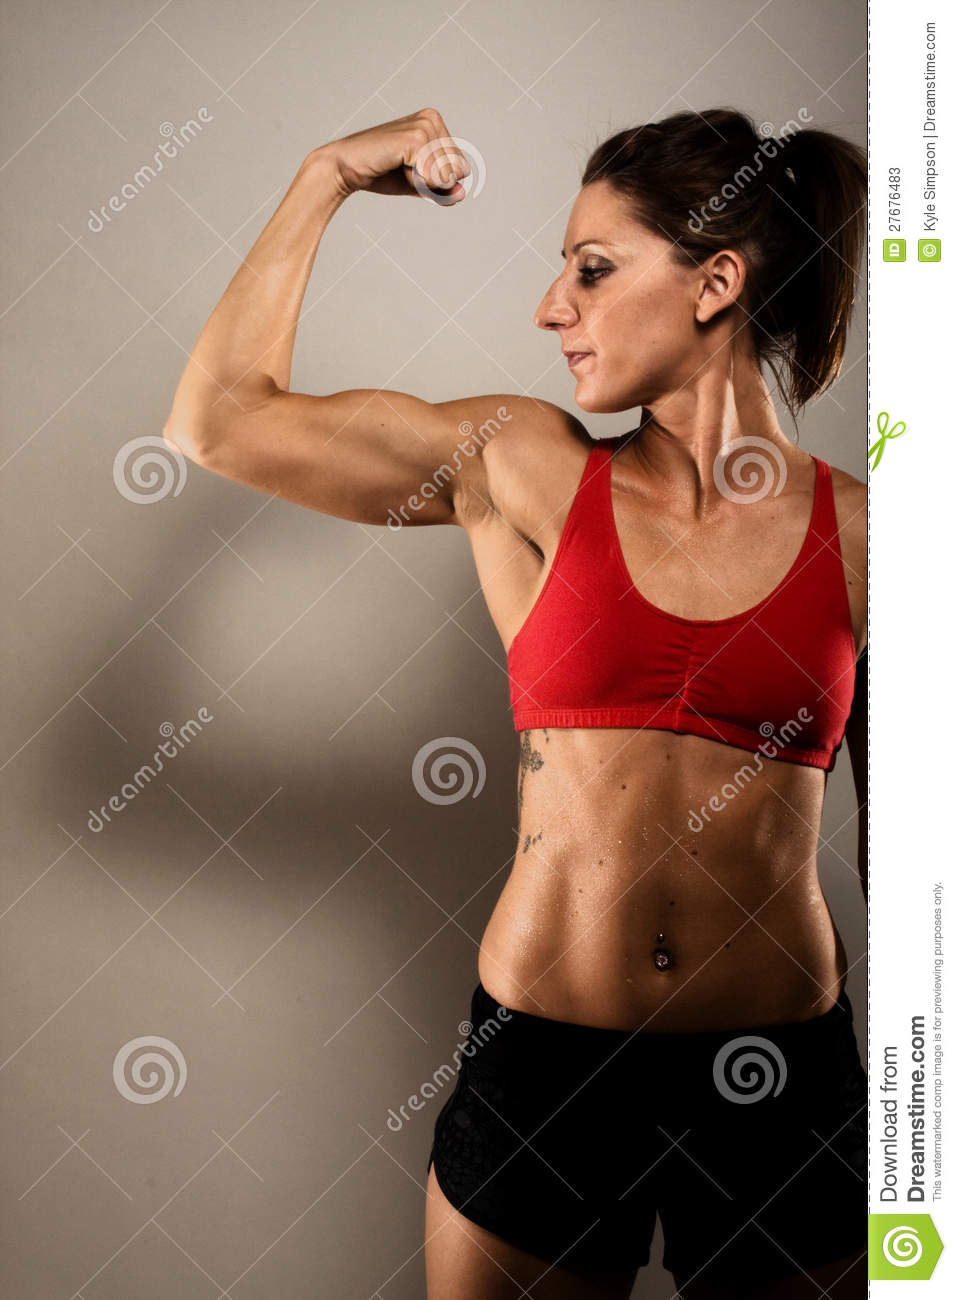 Healthy Fitness Woman Flexing Stock Image Image Of Happy Athlete 27676483 Confessions of a healthy food blogger! dreamstime com